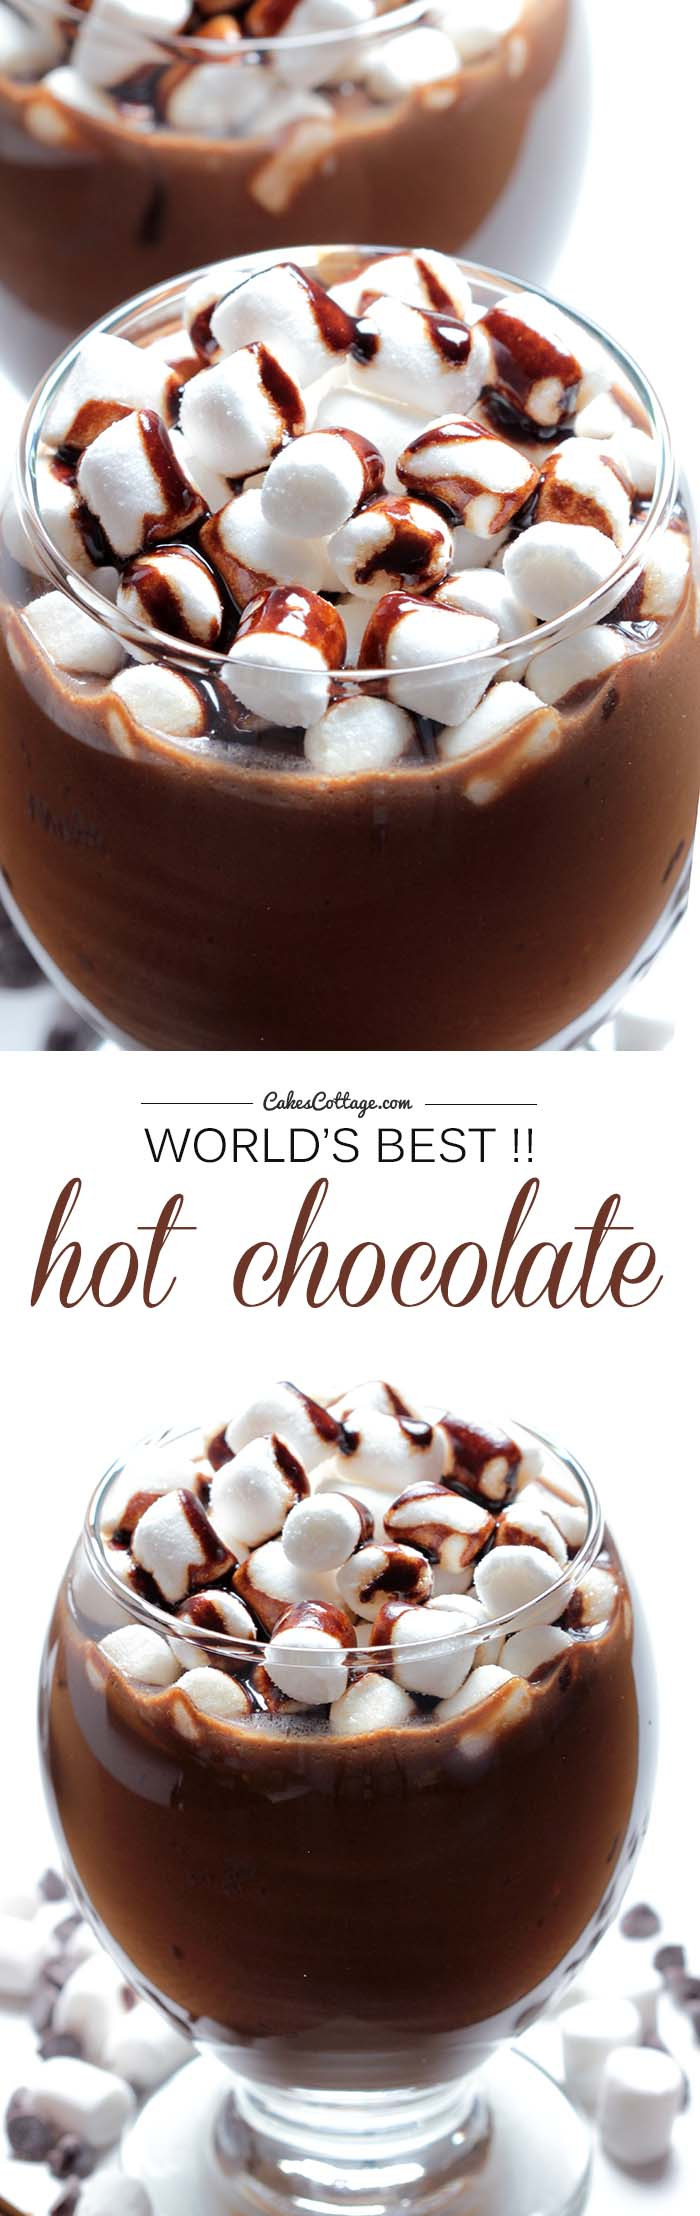 The World's Best Hot Chocolate | Cakescottage